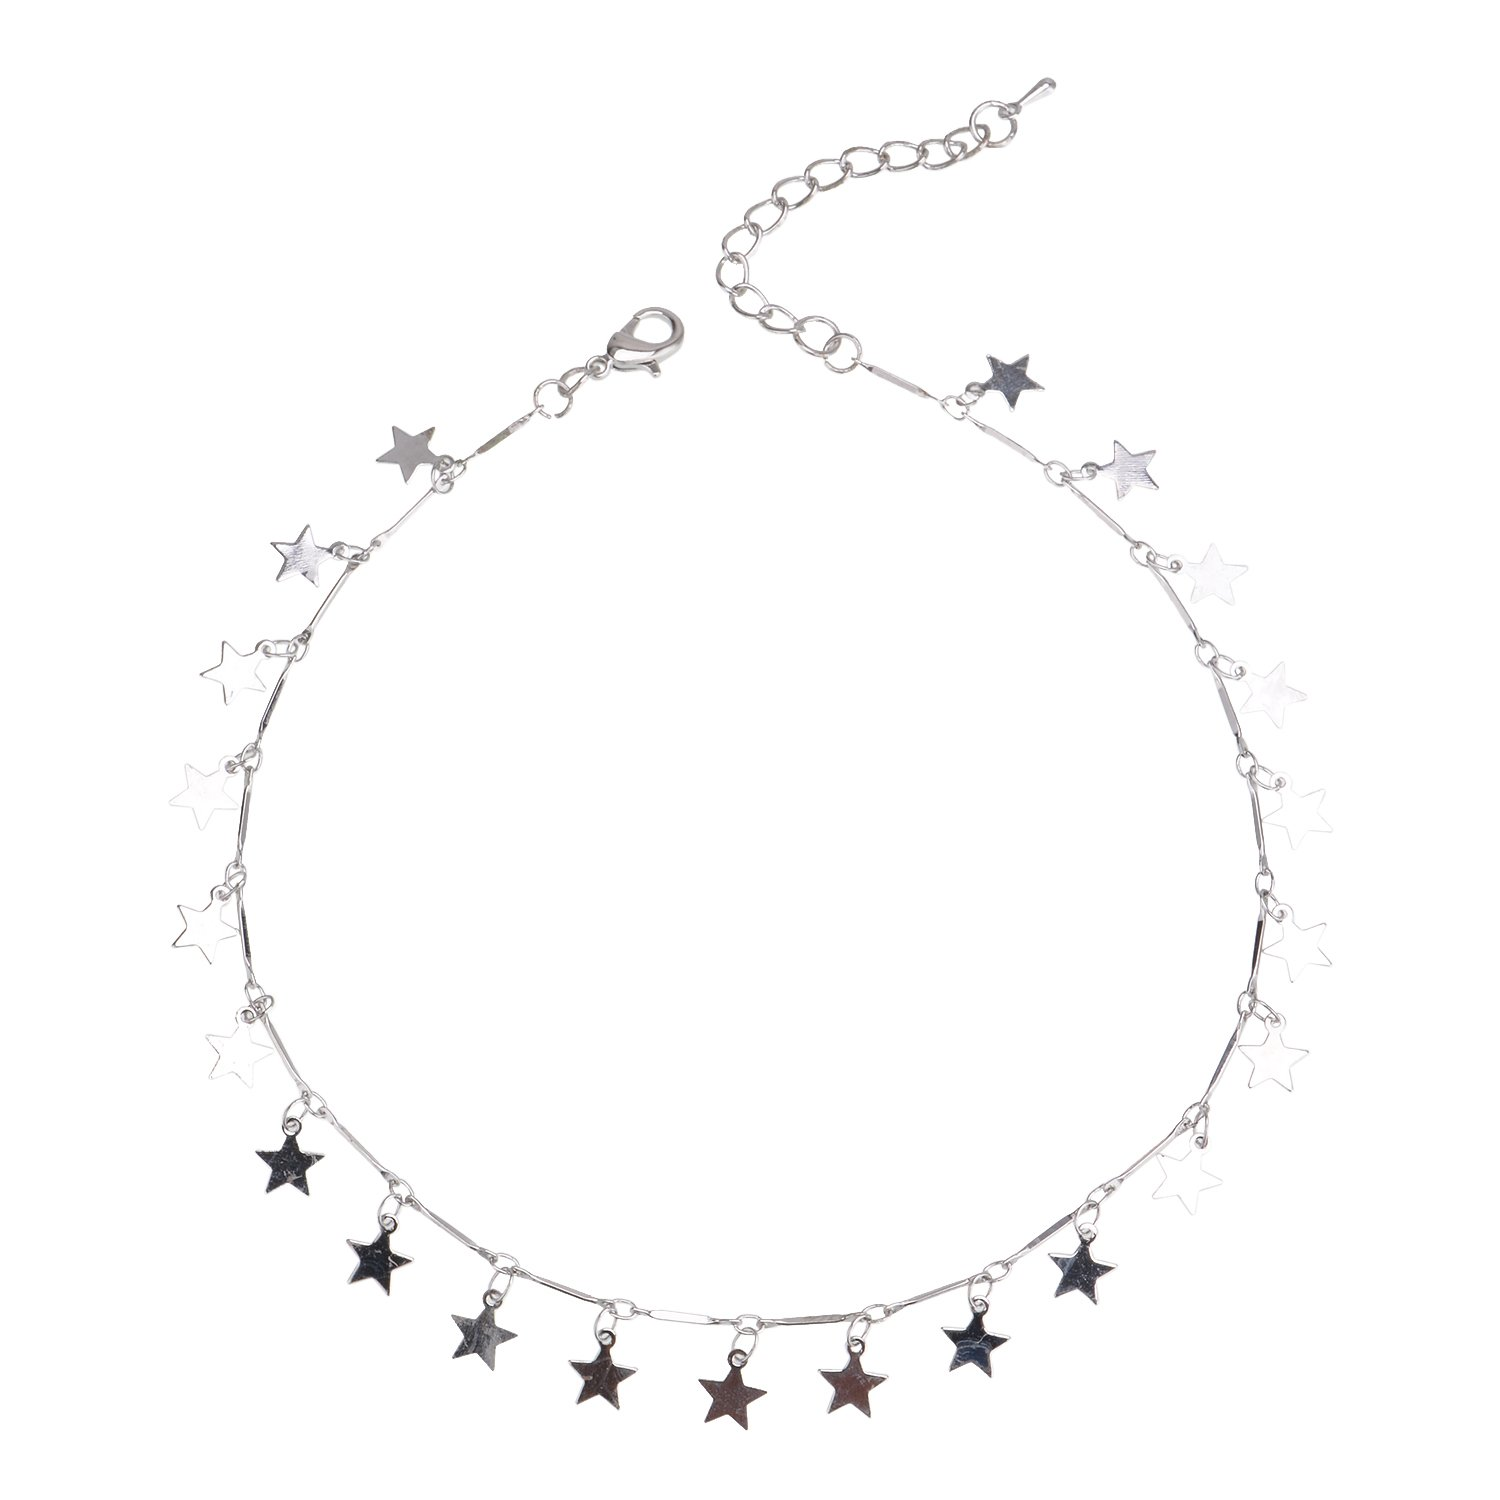 296d00cd493cef Amazon.com: Manerson Lucky Star Choker Necklace Pendant Disc Chain  Statement Necklace for Women Girls (Silver): Jewelry